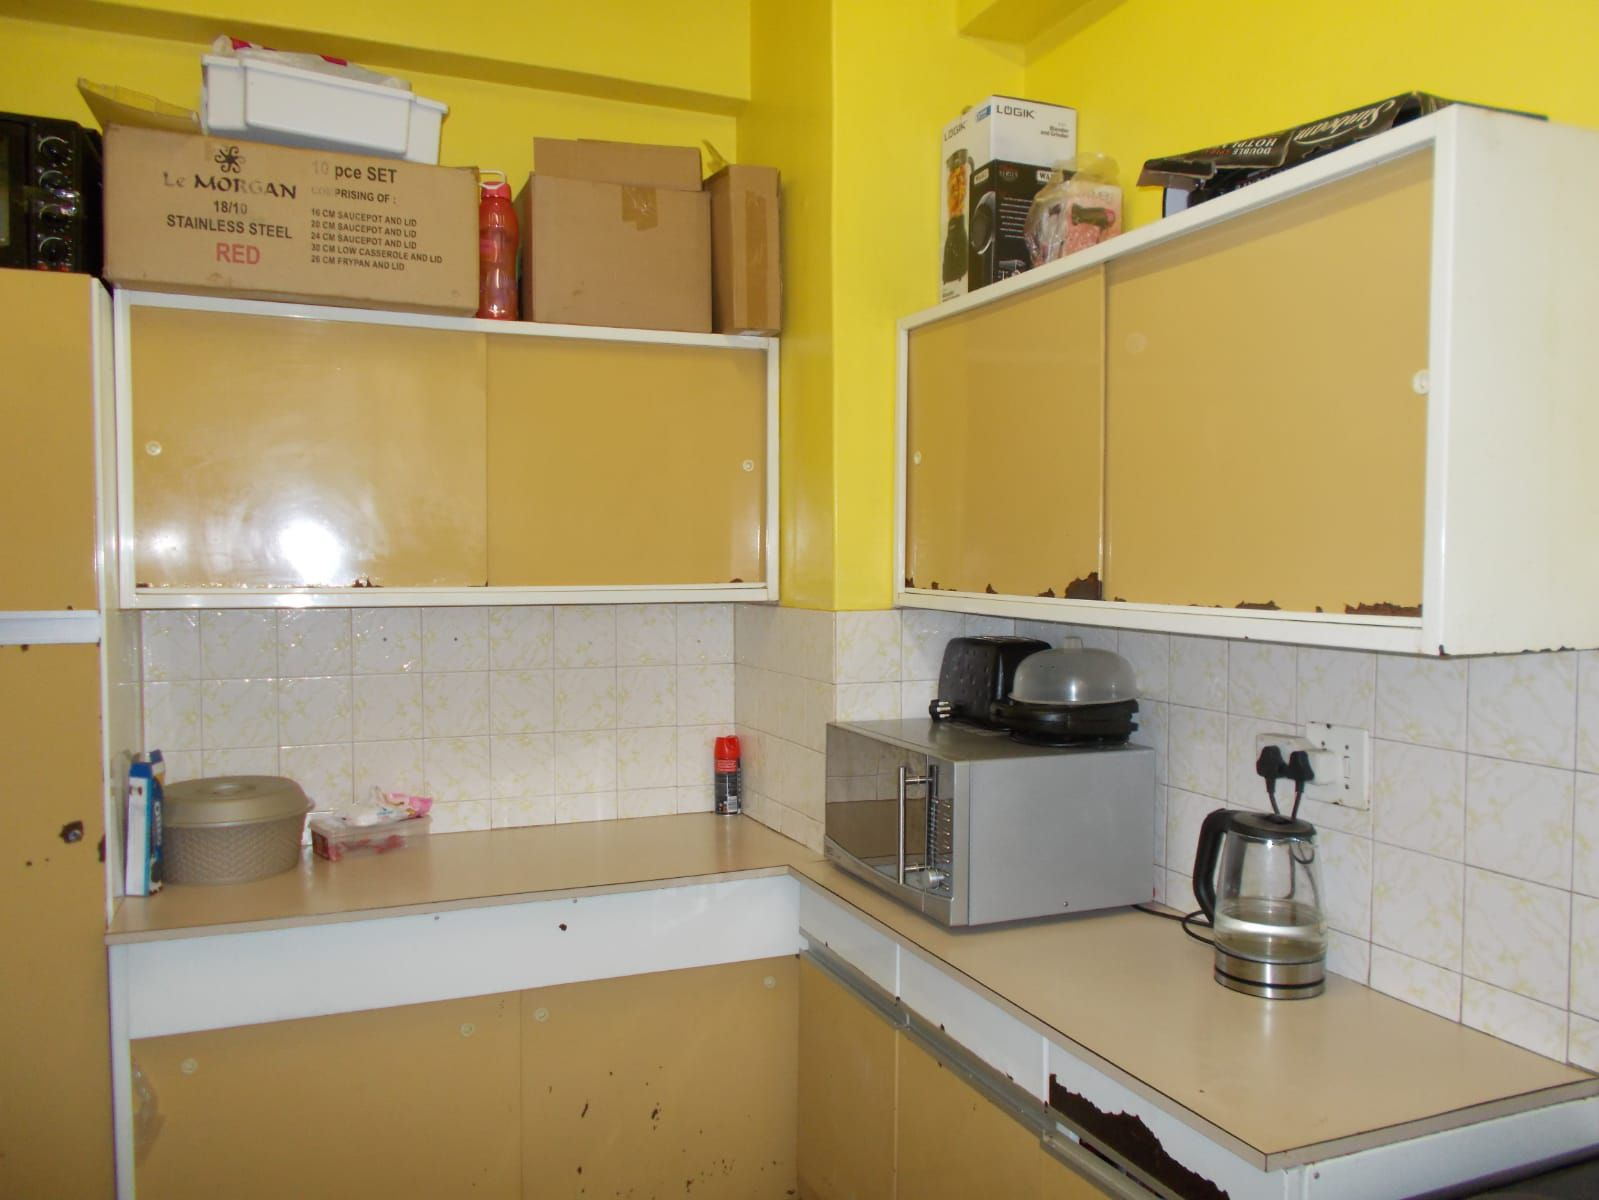 Apartment in Hillbrow - WhatsApp Image 2021-01-12 at 13.03.58.jpeg